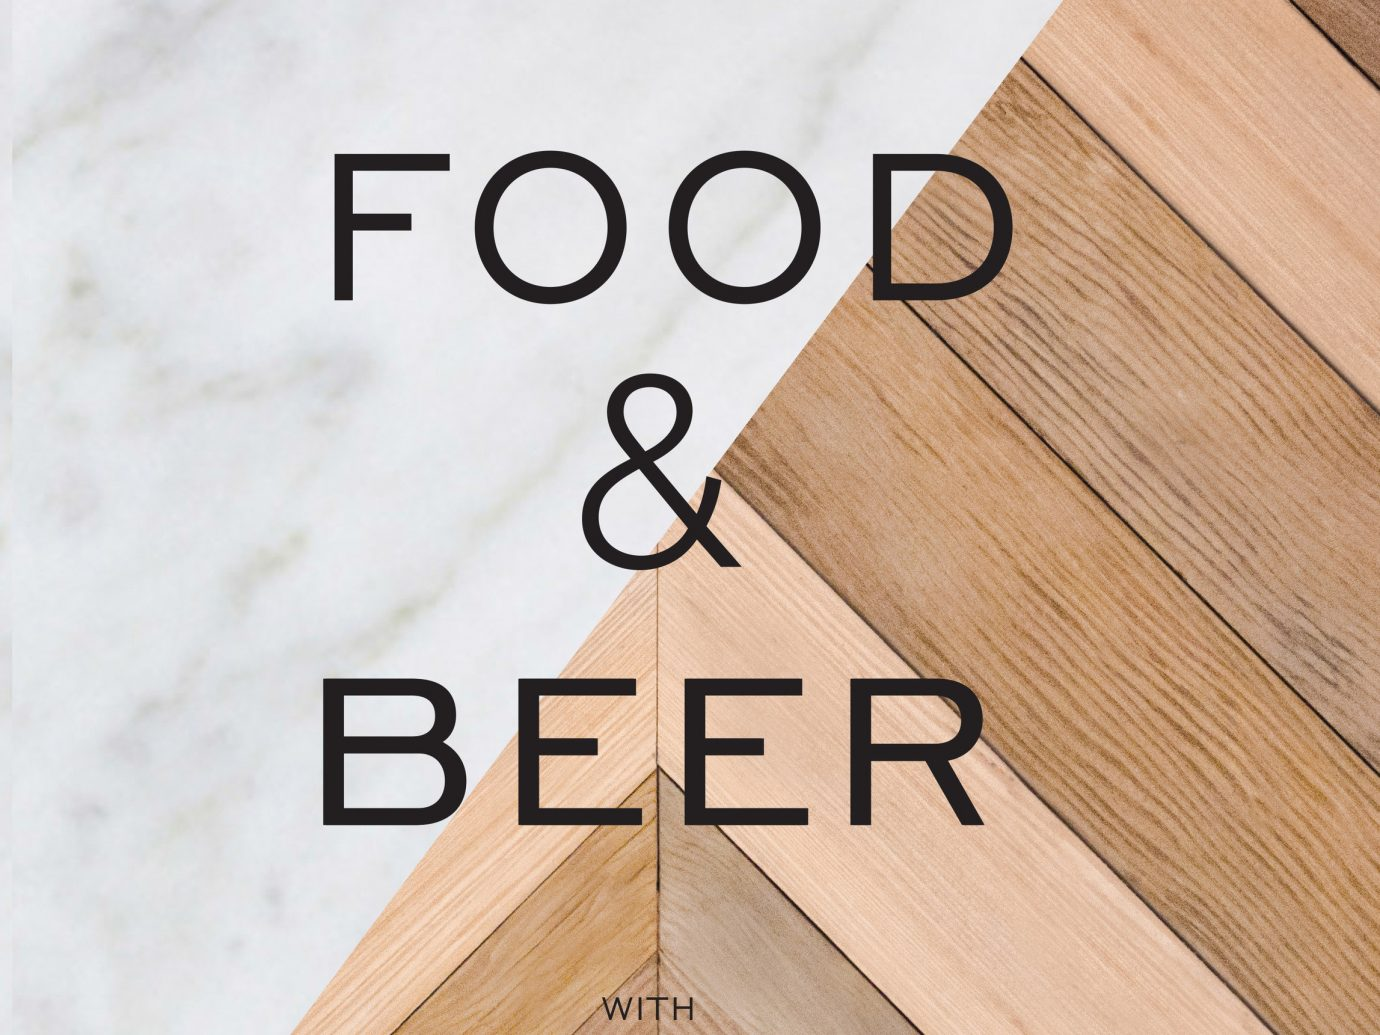 Food + Drink wood floor hardwood font brand wood stain flooring wood flooring line